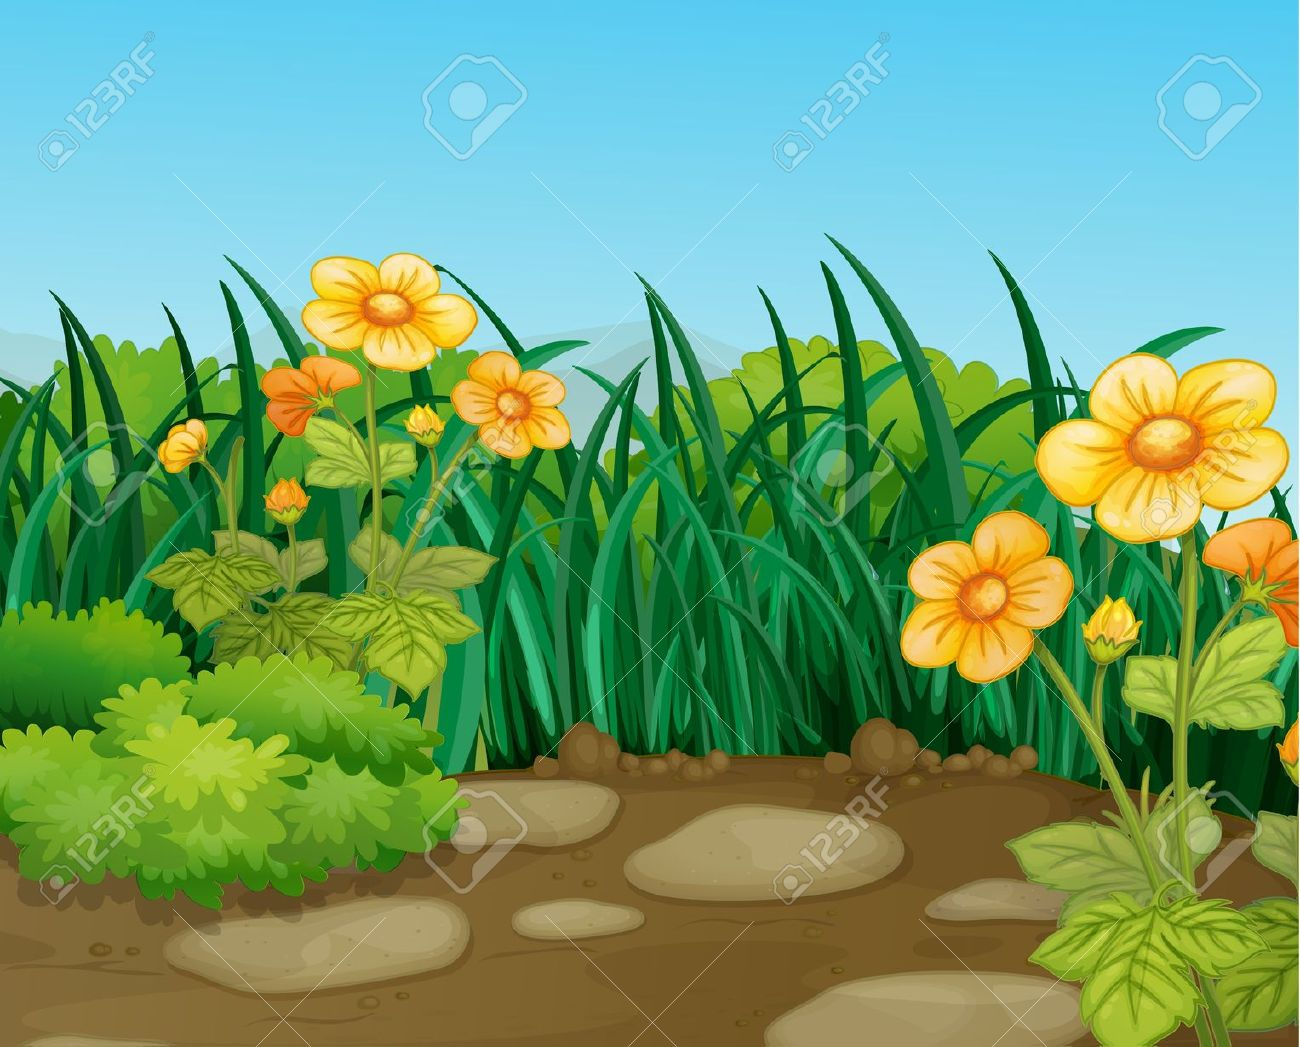 Natural scene clipart banner Beautiful clipart of nature scenes - Clip Art Library banner